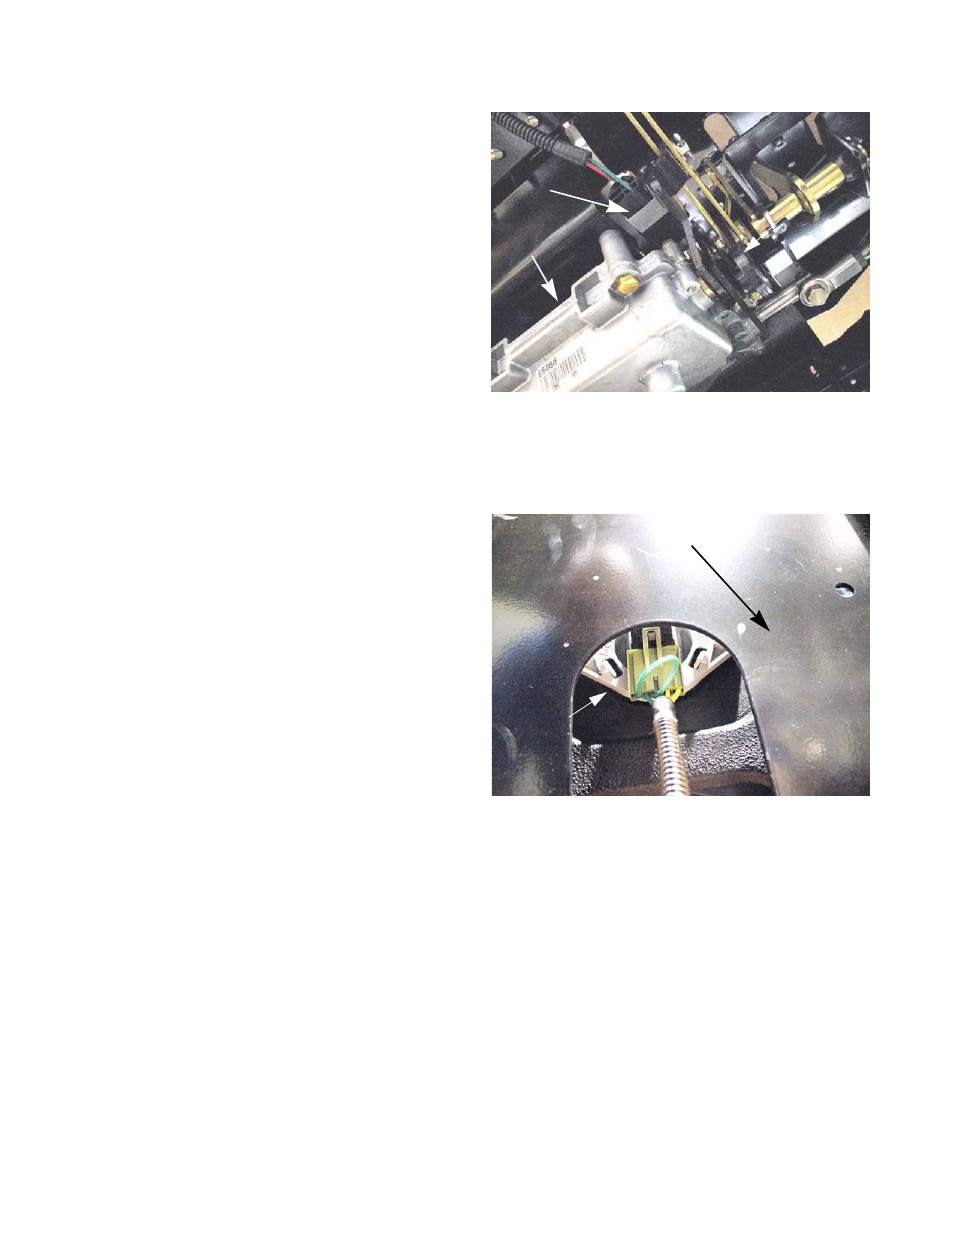 Reverse Safety Switch Seat Cub Cadet Z Force S Protect Against Shorts In Circuit Can Usually Be Series User Manual Page 100 168